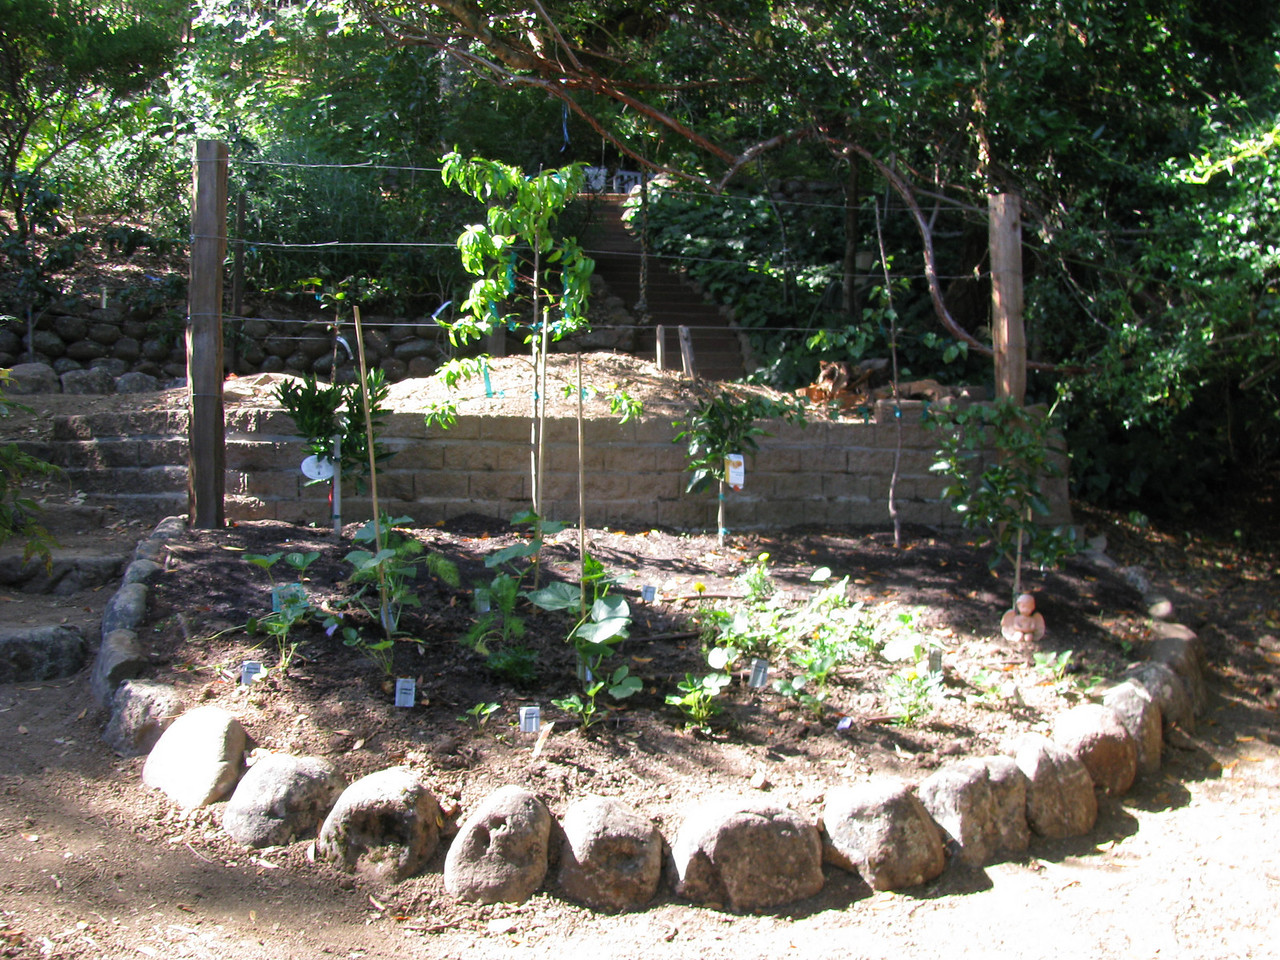 A new vegetable bed with drip irrigation and a new 'espalier' of fruit trees behind.